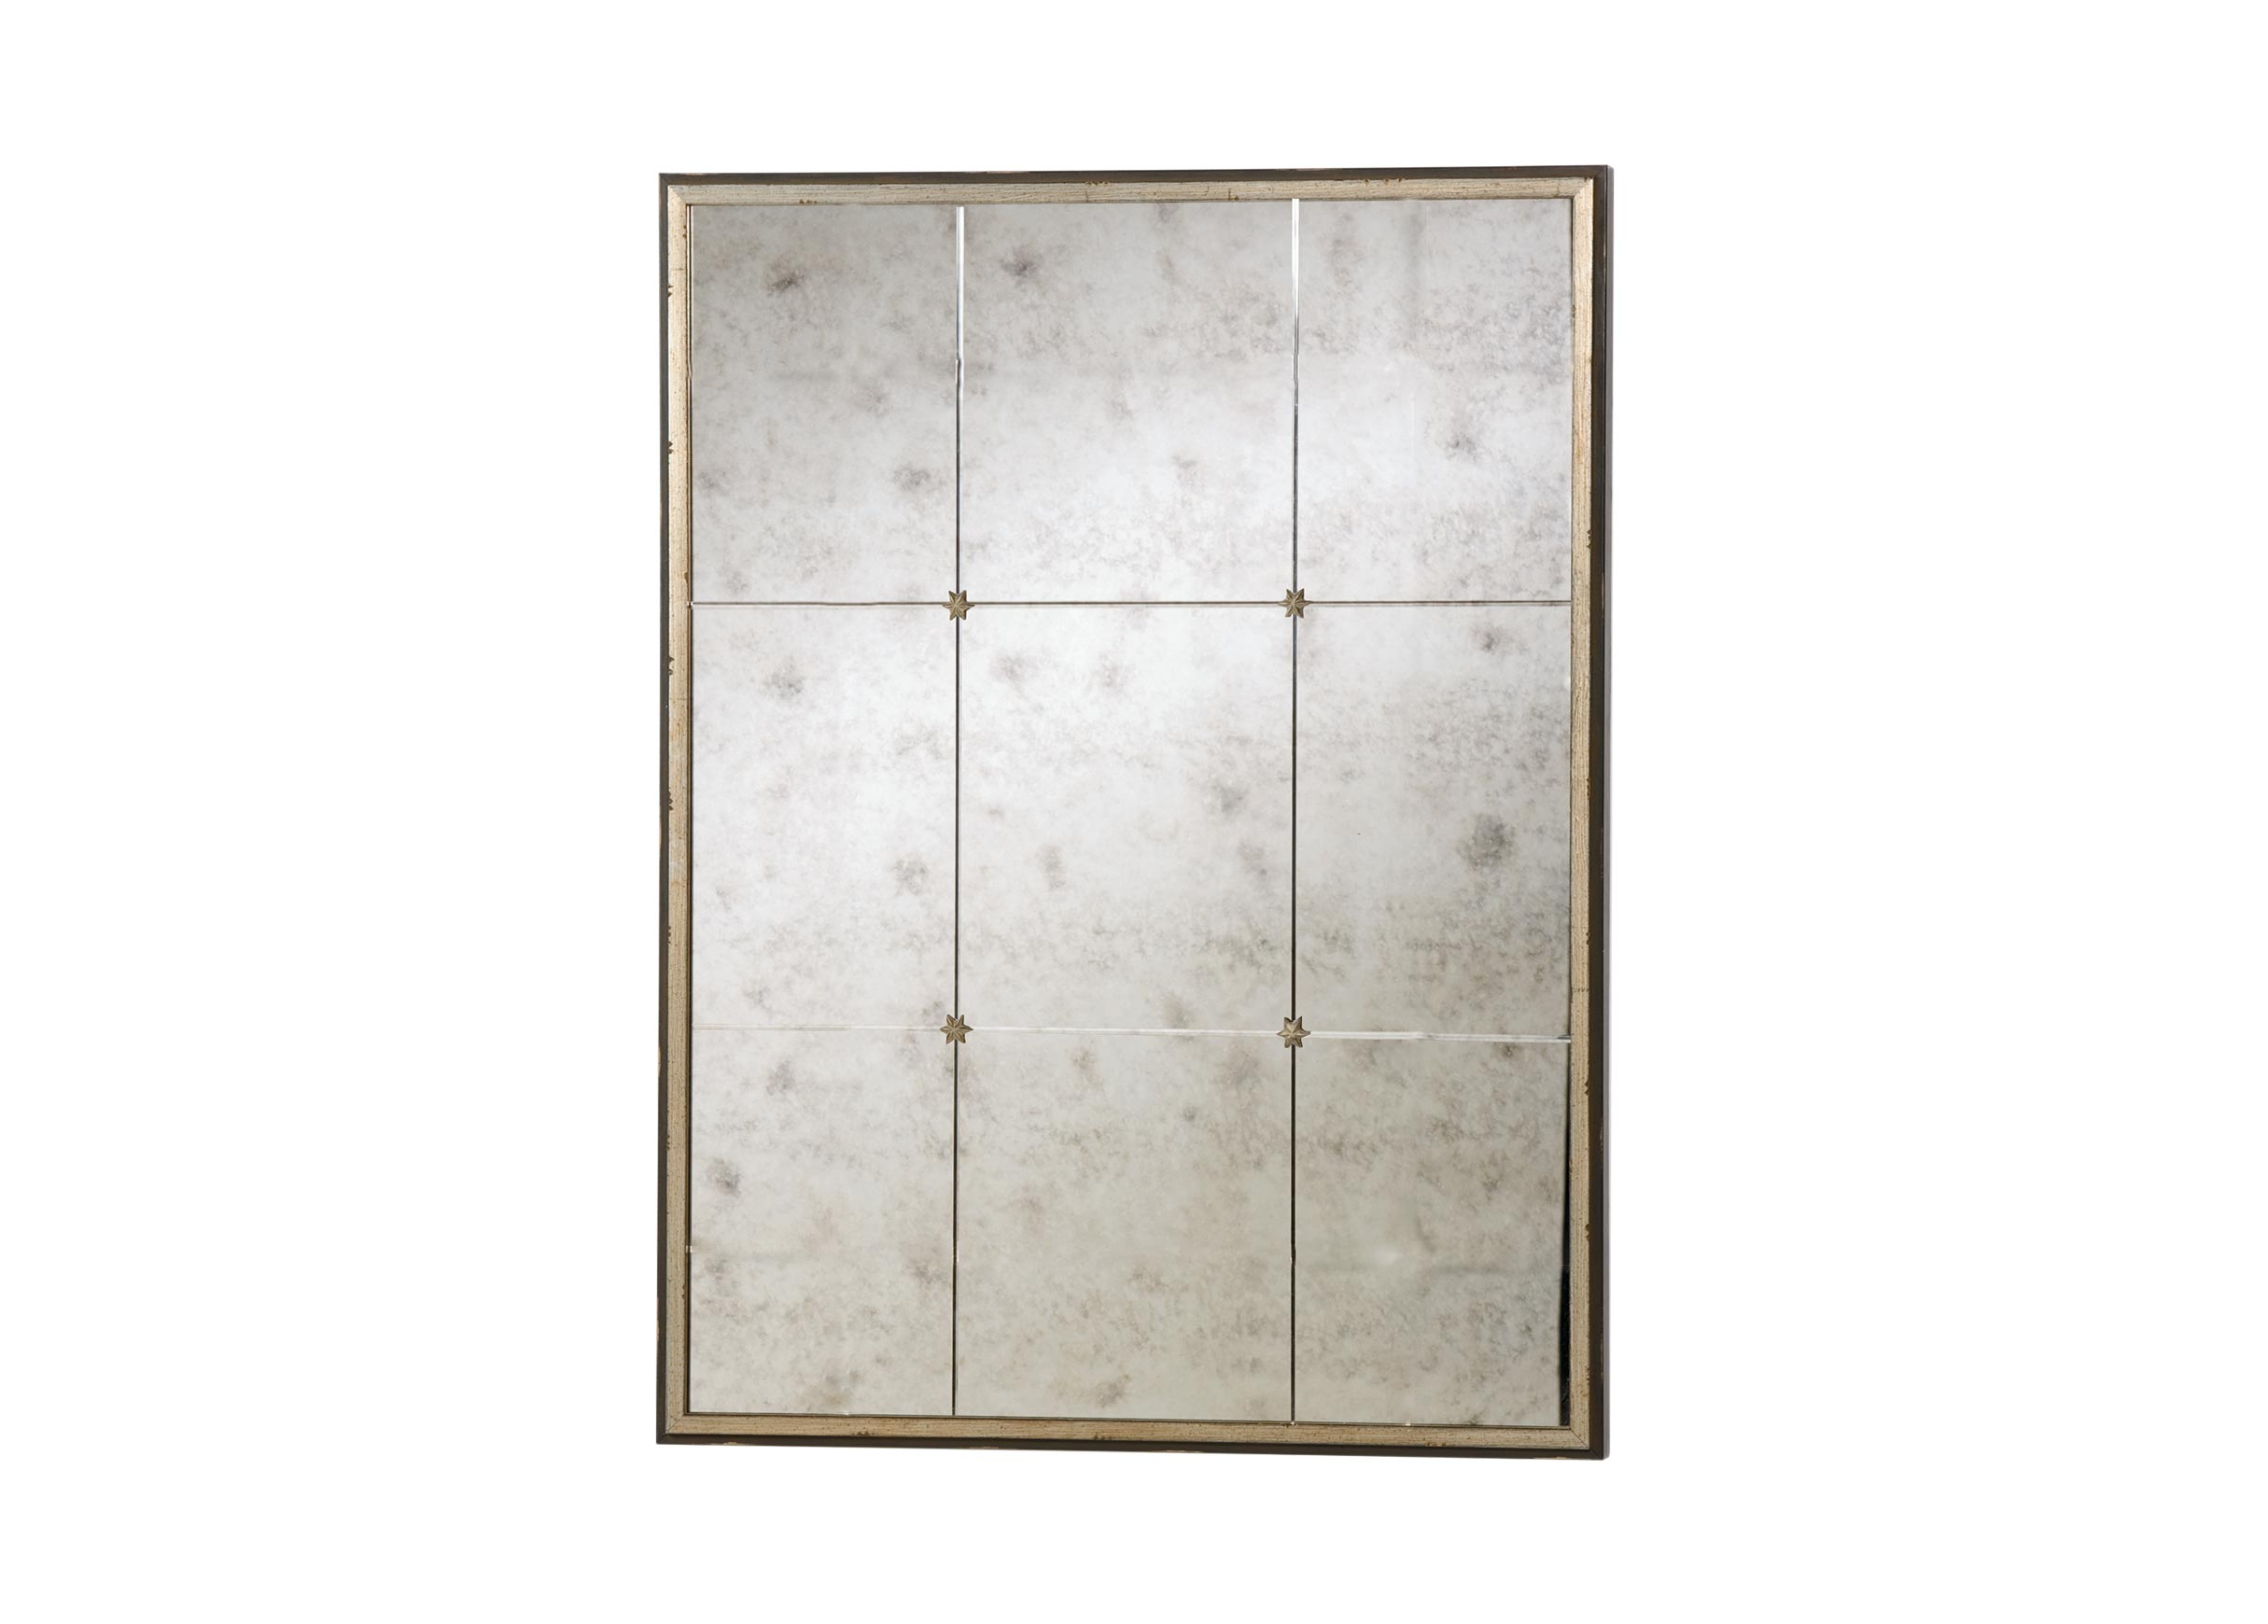 Ethan Allen Within Recent Old Fashioned Wall Mirrors (View 20 of 20)